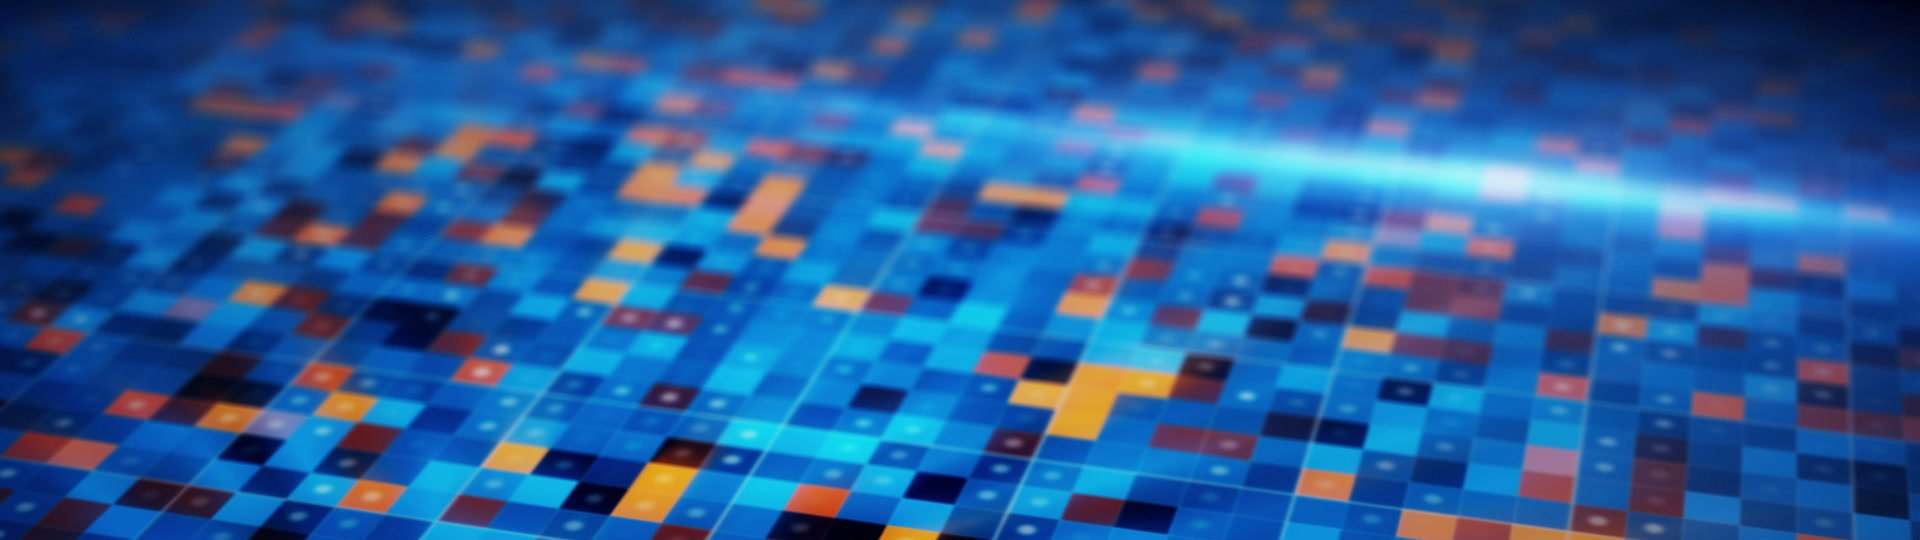 Beaming blue orange squares loopable techno background | beaming blue orange squares. computer generated loopable technology seamless loop motion background - ID:19852